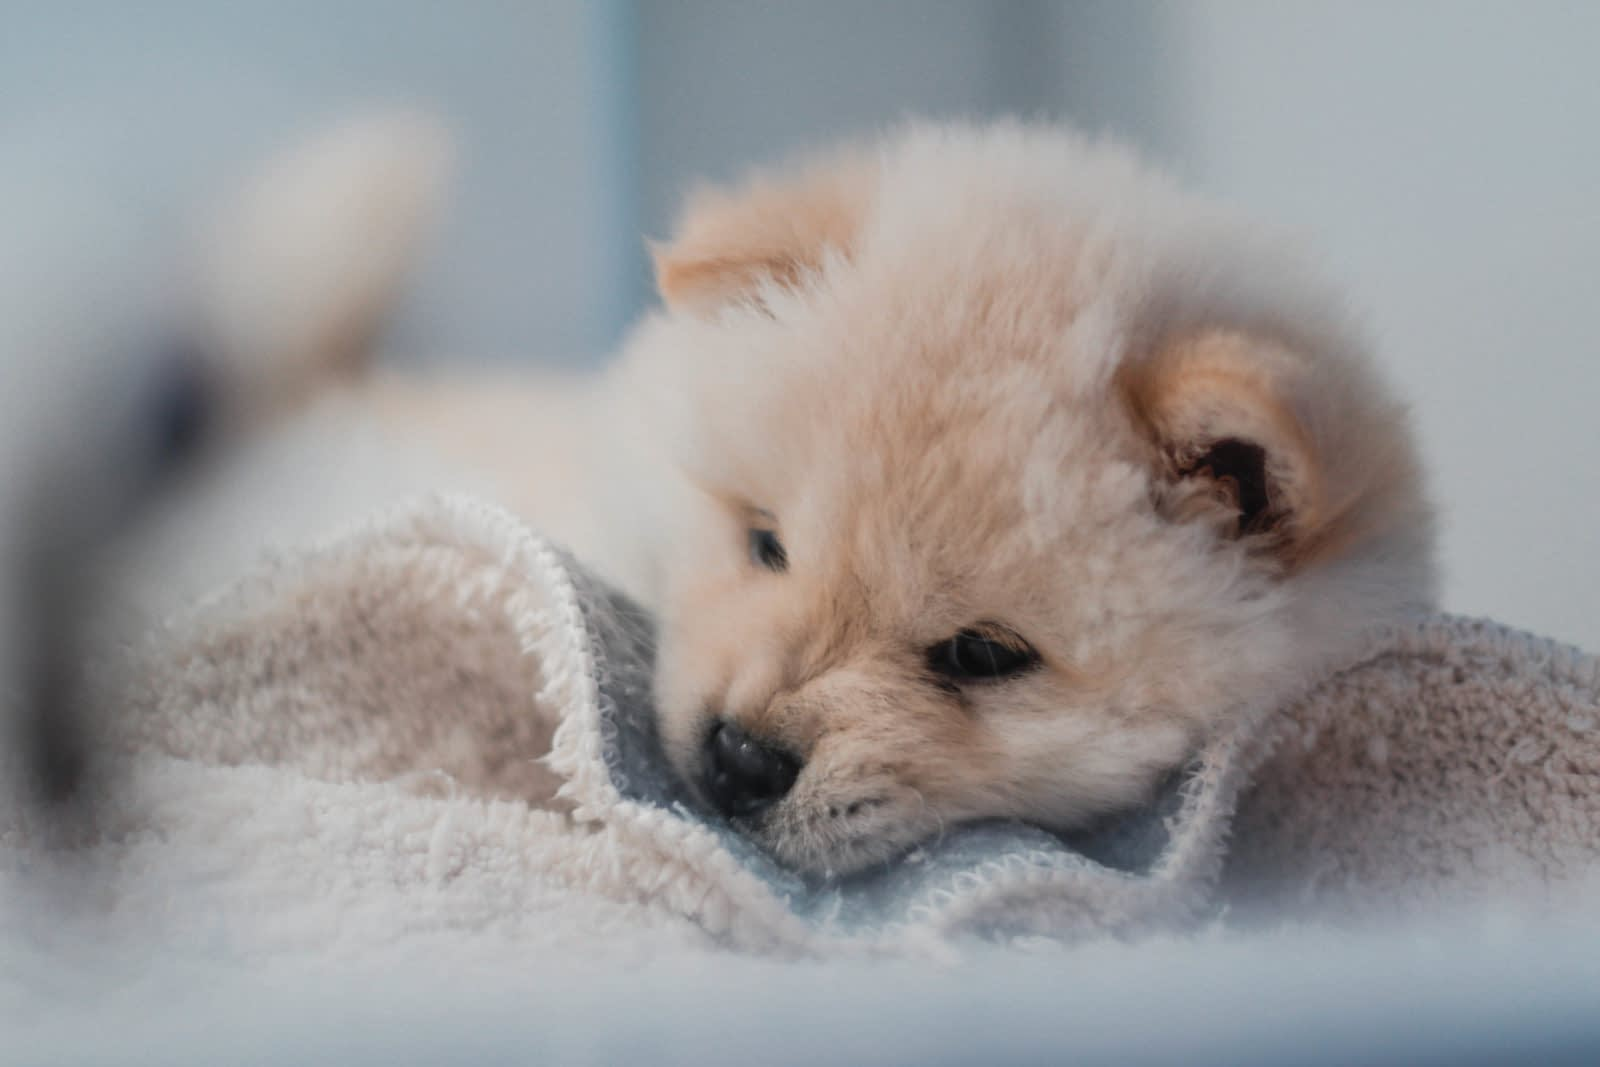 Teacup Puppies for sale in Rhode Island, RI